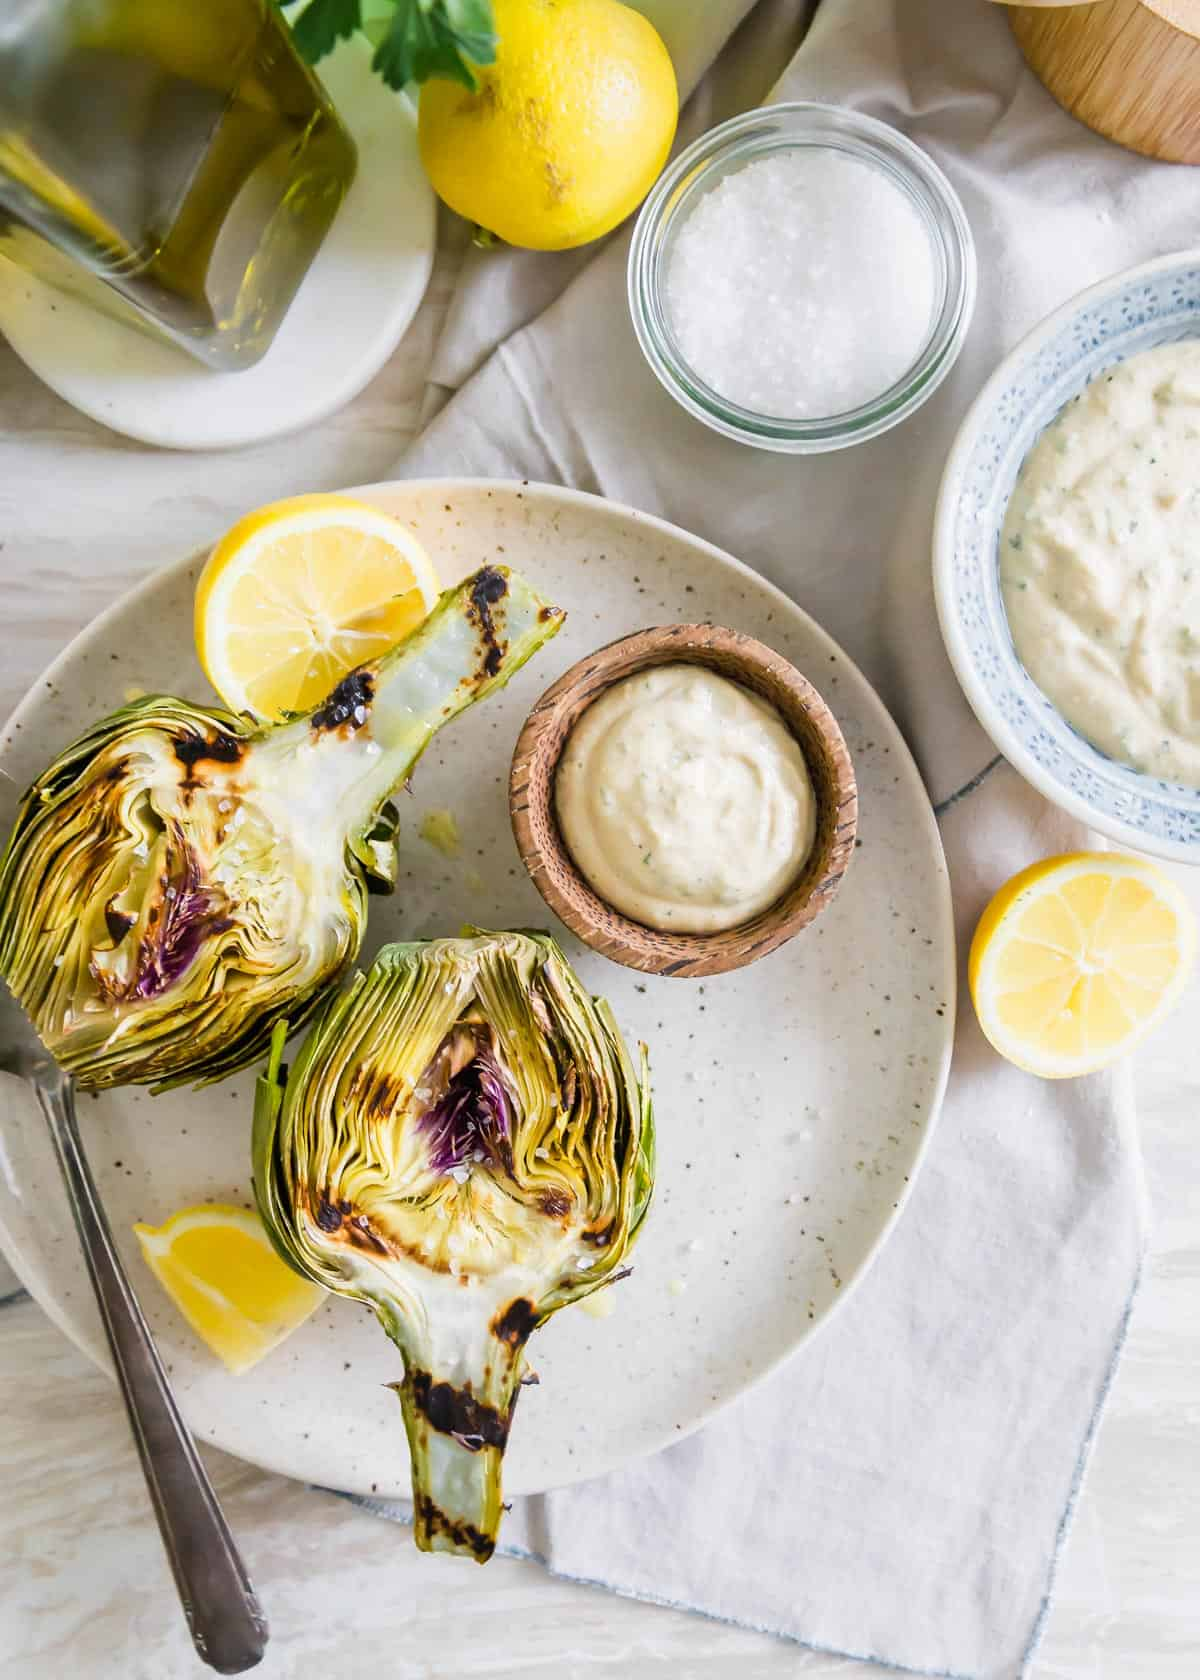 grilled artichokes with lemon tahini dipping sauce